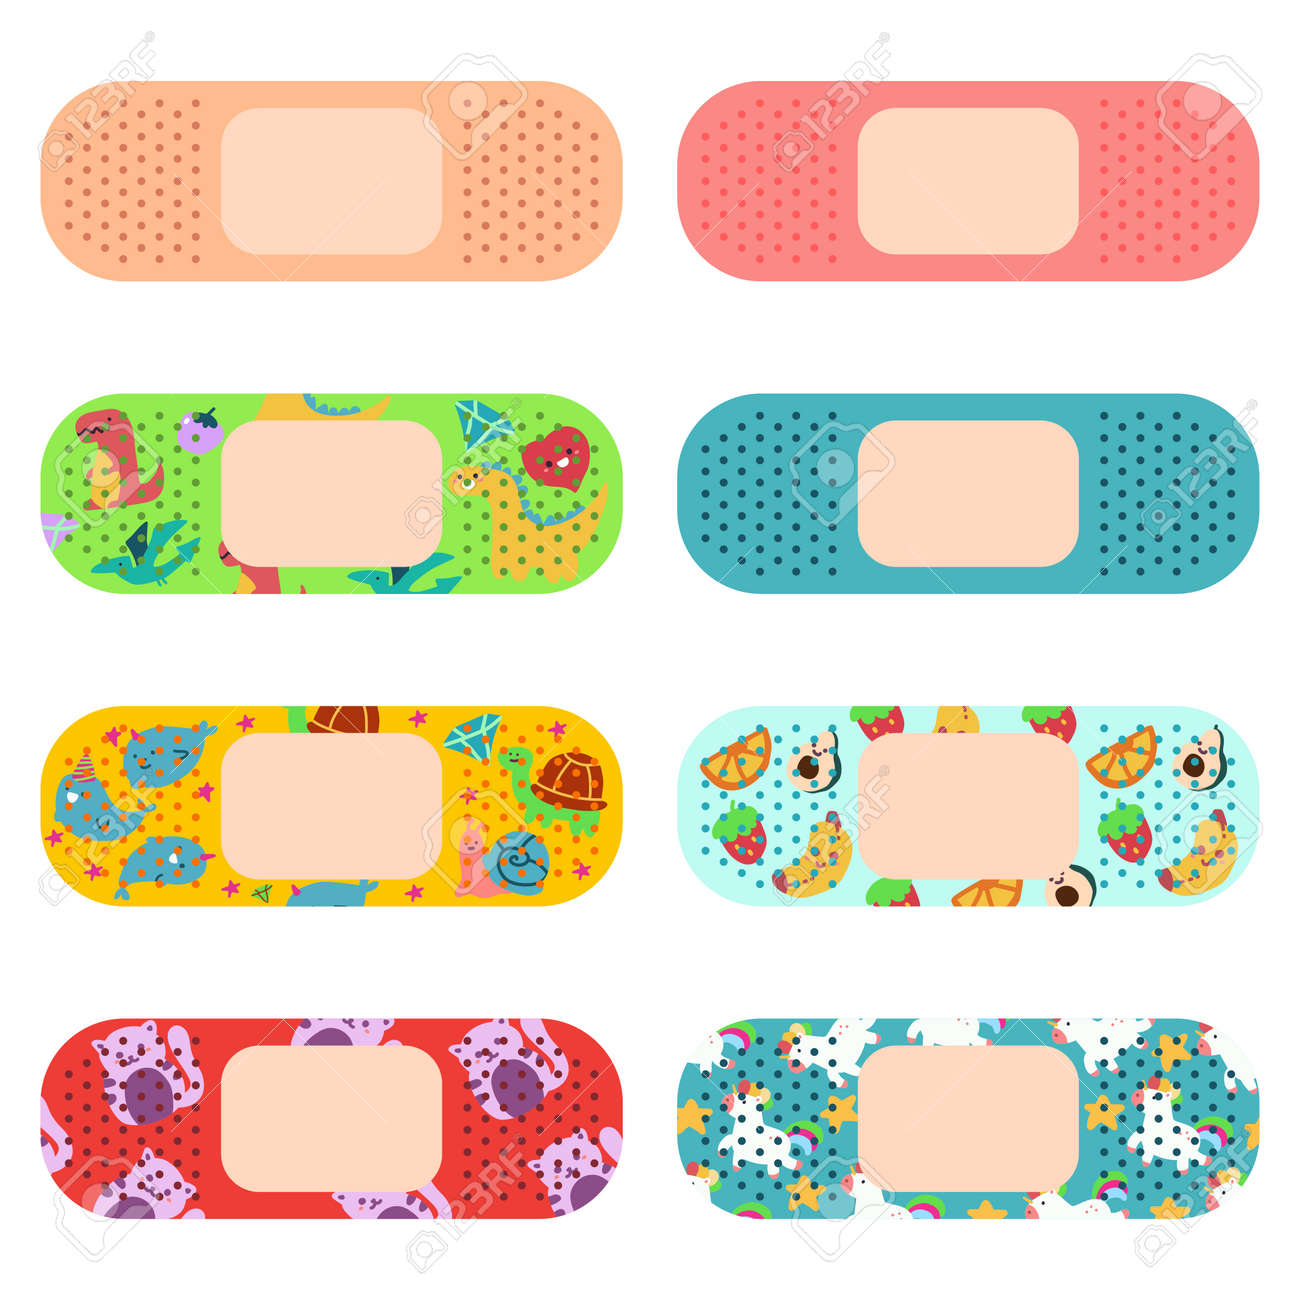 Medical adhesive plaster for adults and kids vector cartoon set isolated on a white background. - 170855146